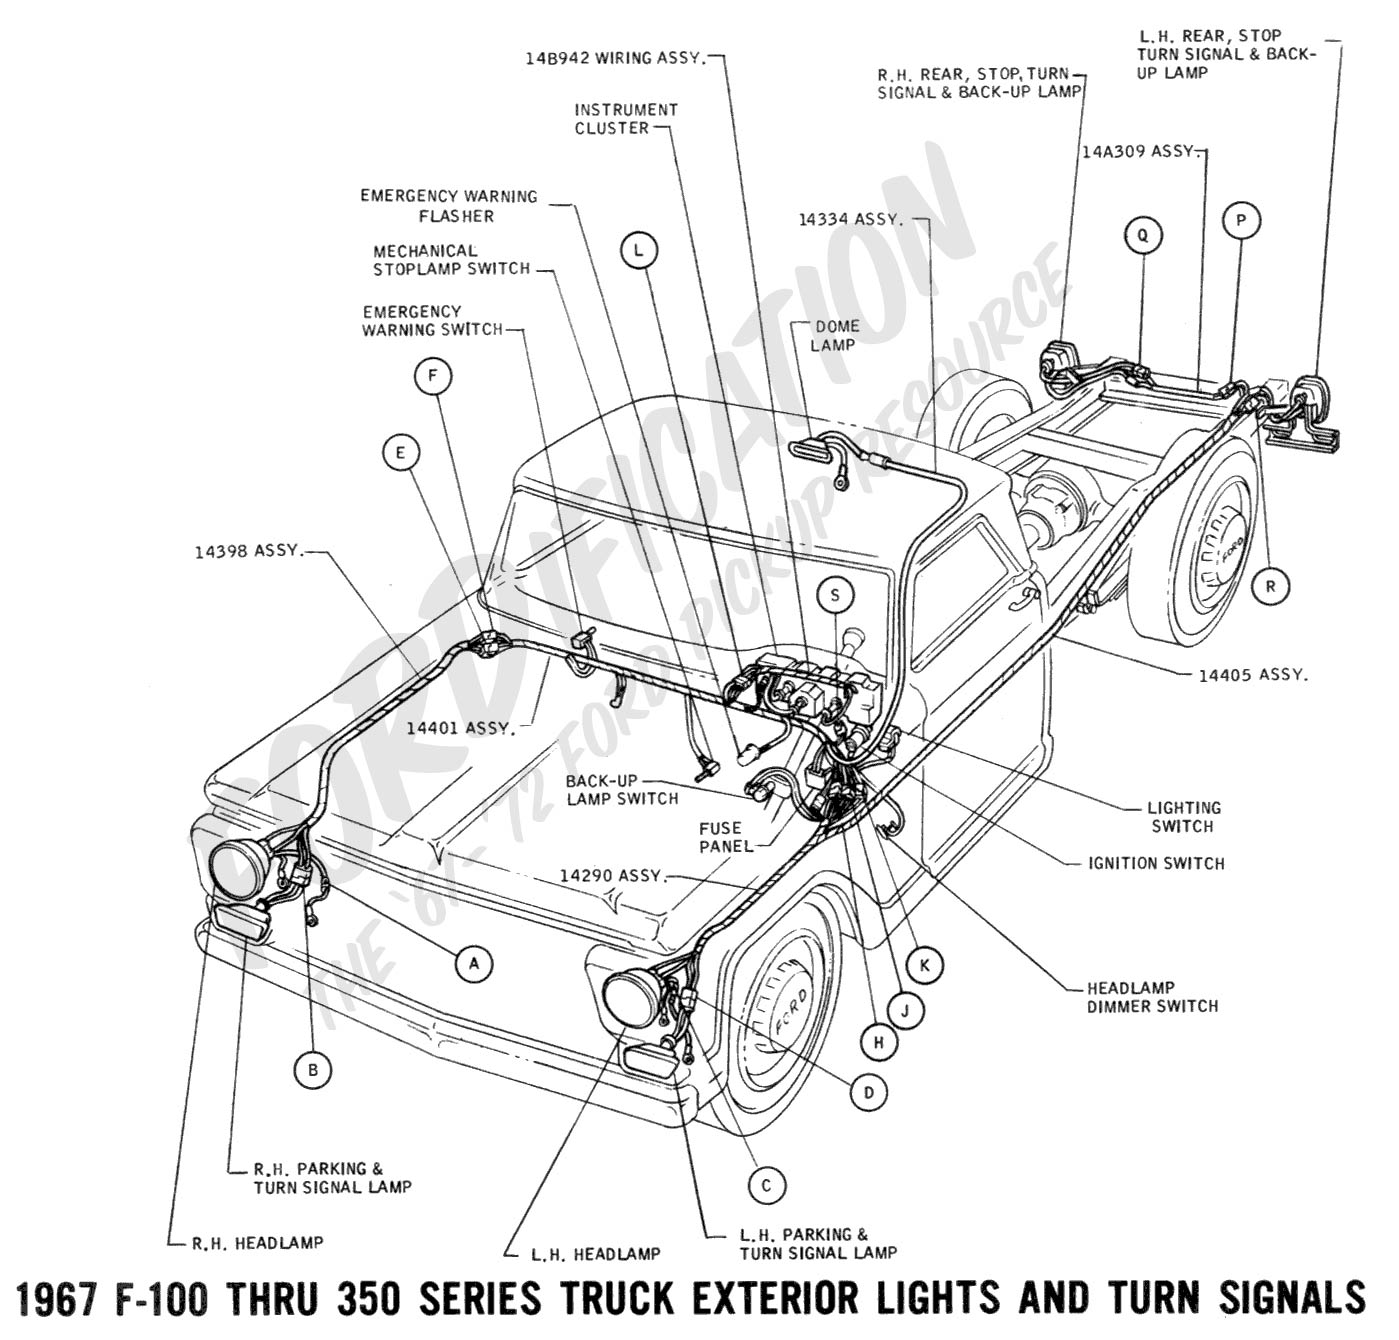 hight resolution of 1967 f 100 thru f 350 exterior lights and turn signals 01